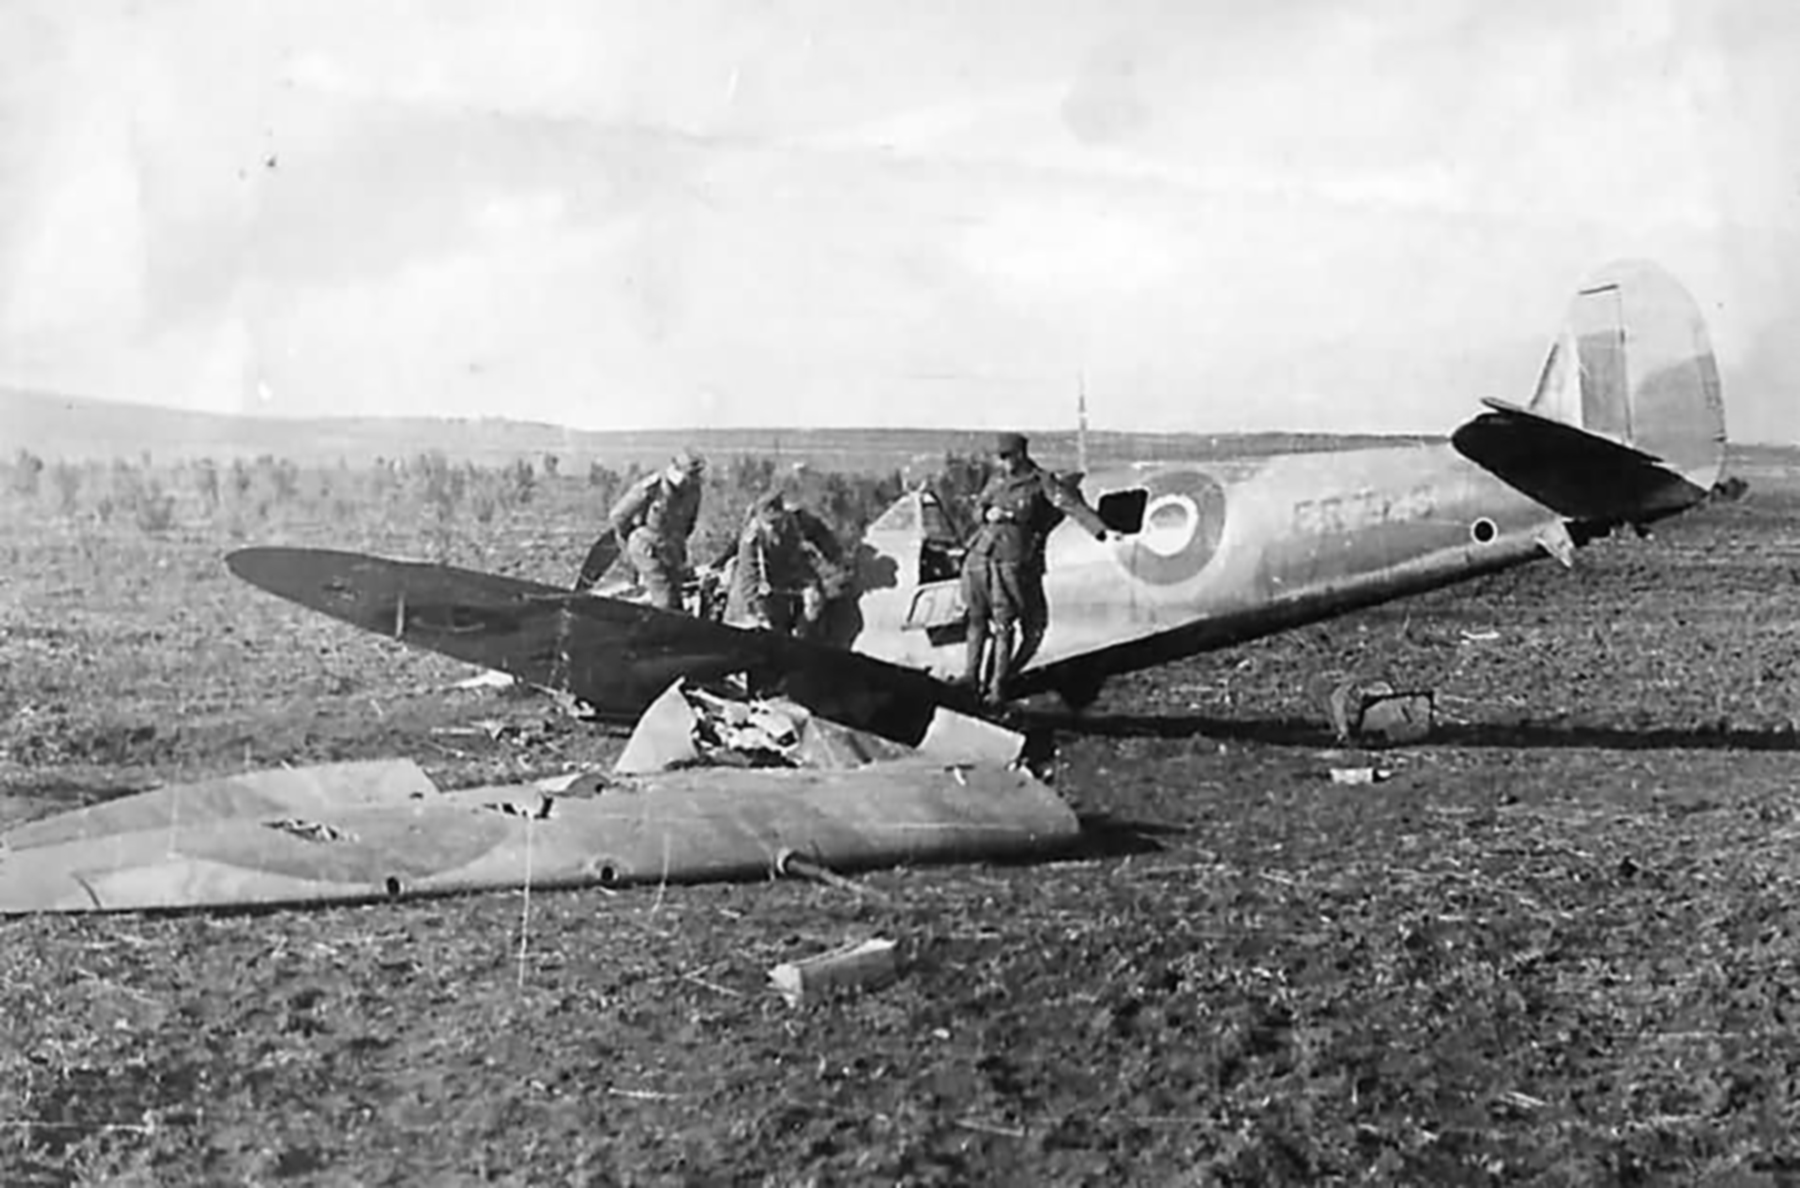 Spitfire MkVb force landed being inspected by DAK soldiers 1943 web 01